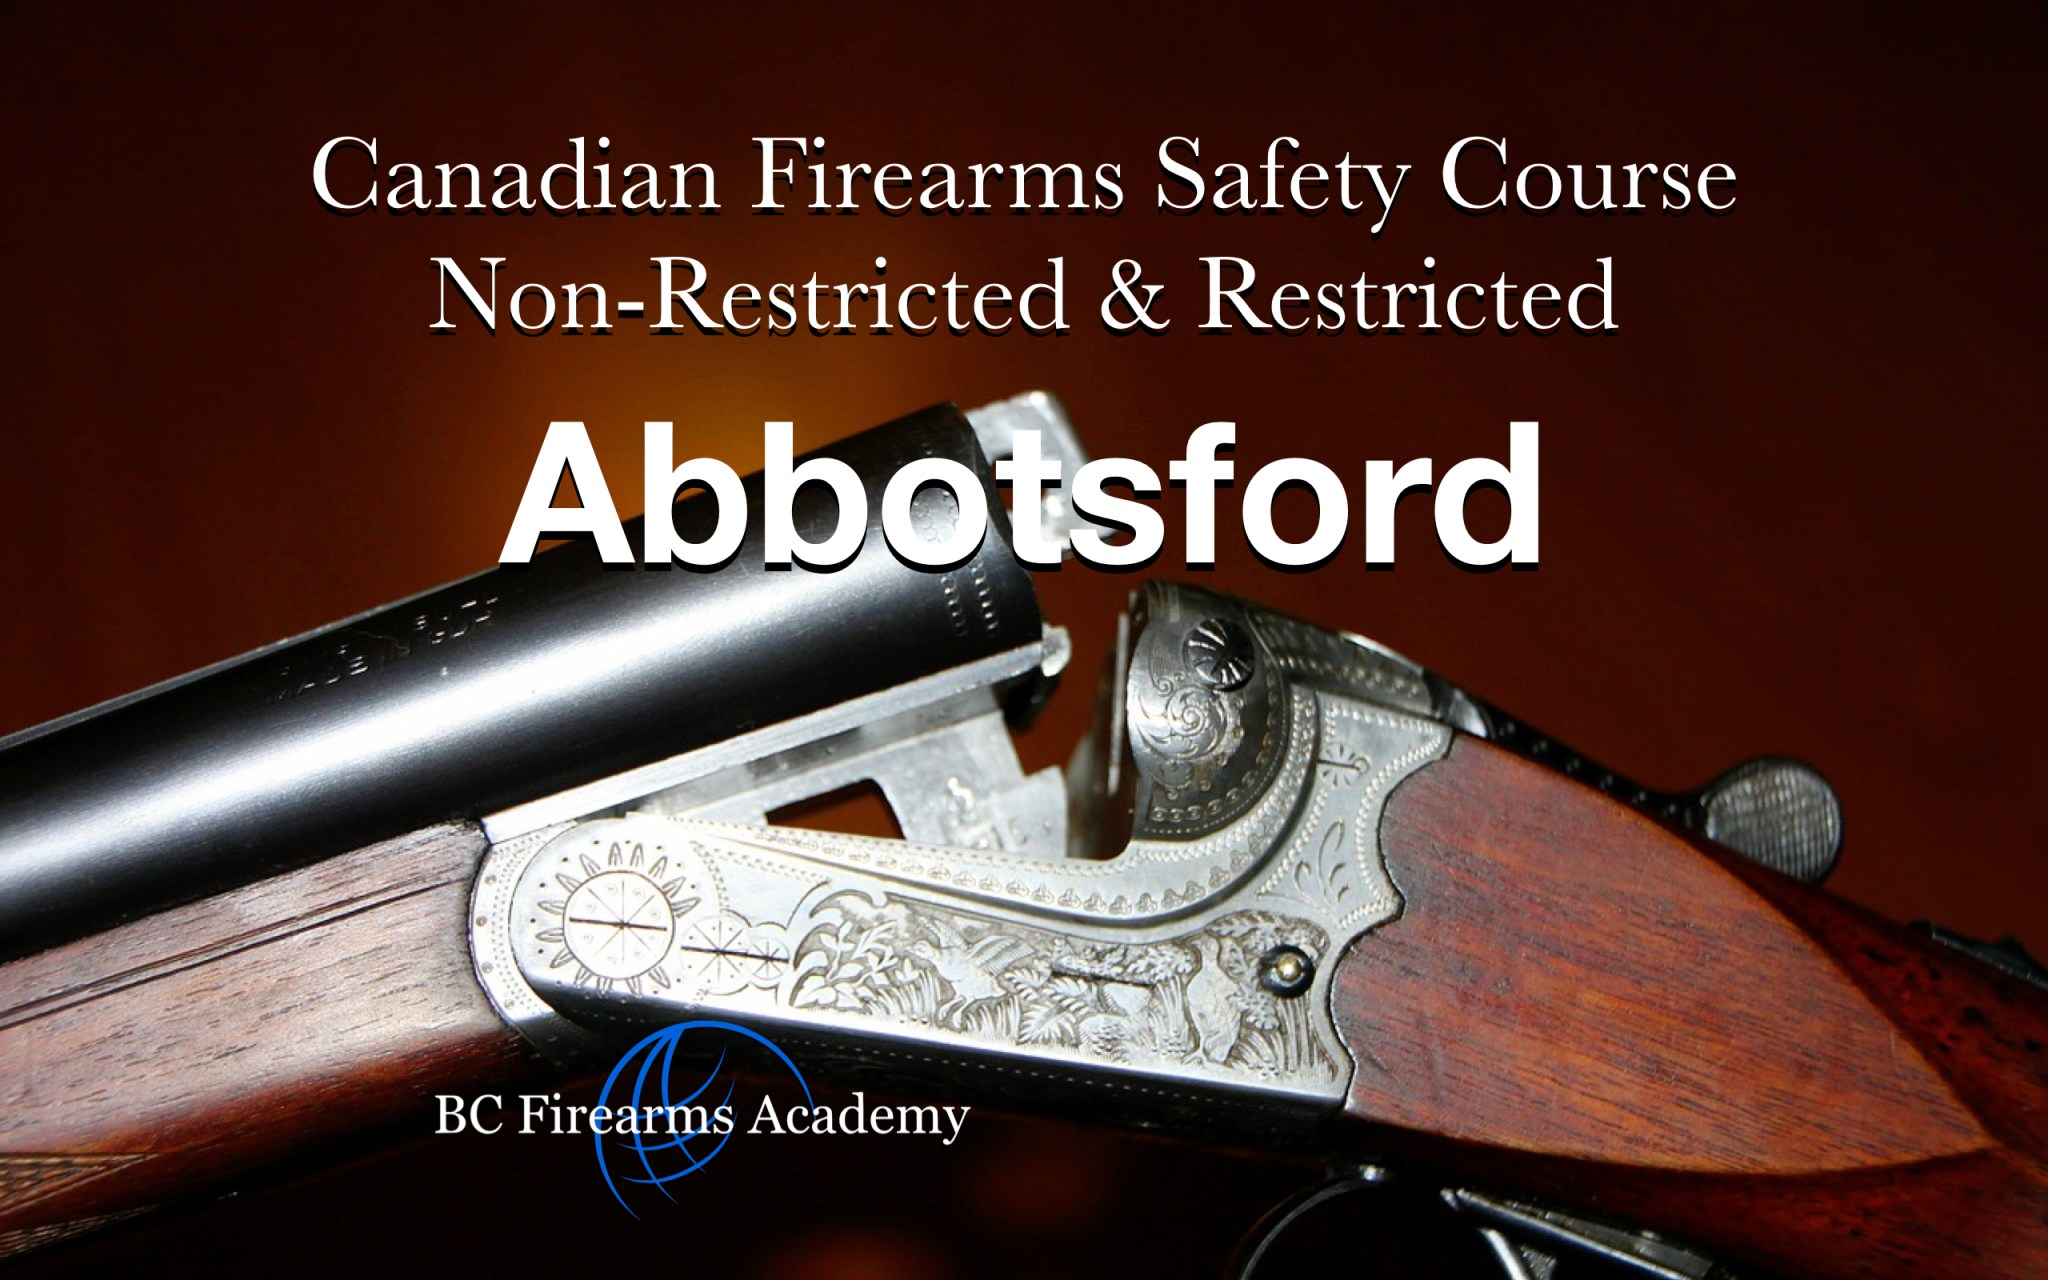 PAL (CFSC/CRFSC) – Canadian Firearms Safety Course & Canadian Restricted Firearms Safety Course Jan 3/4